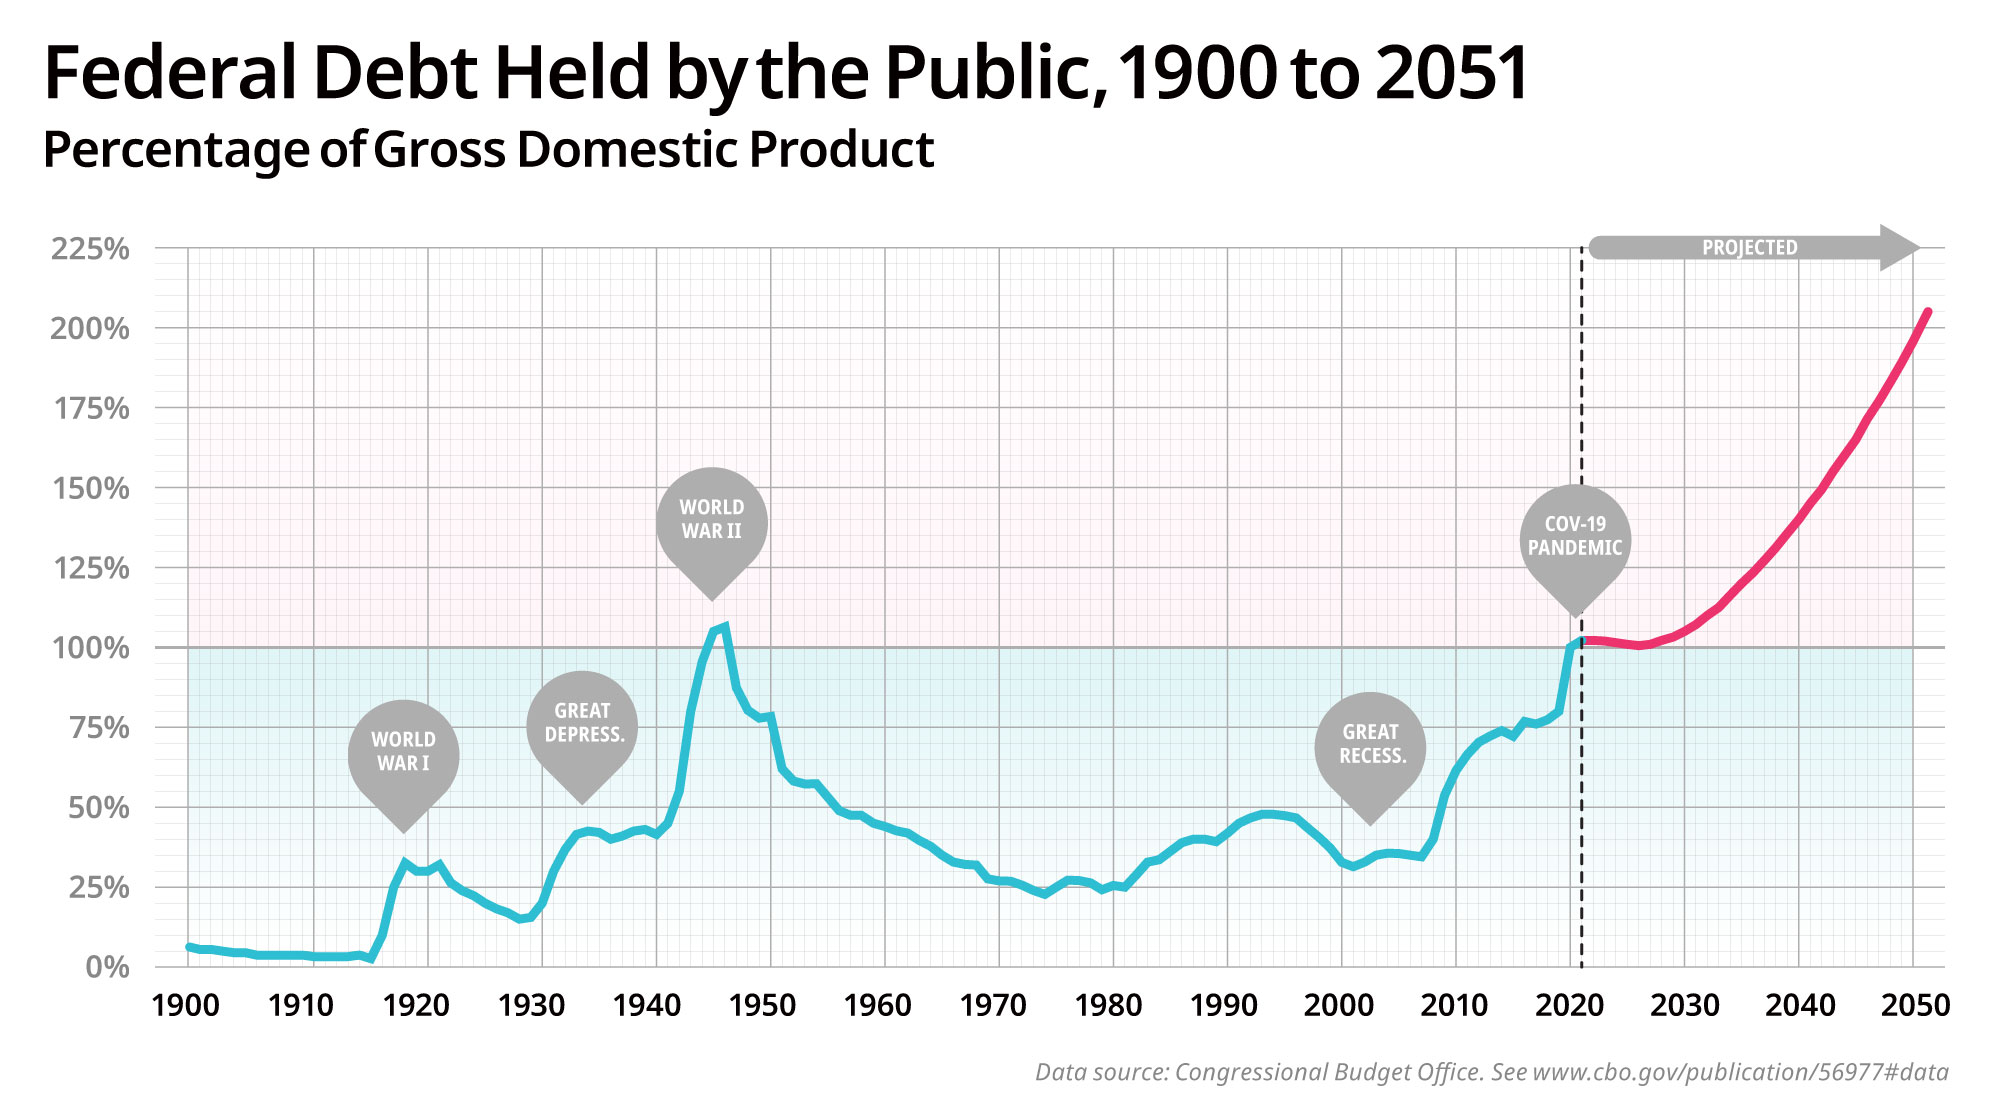 Federal Debt Held by the Public, 1900 to 2051 (CBO)